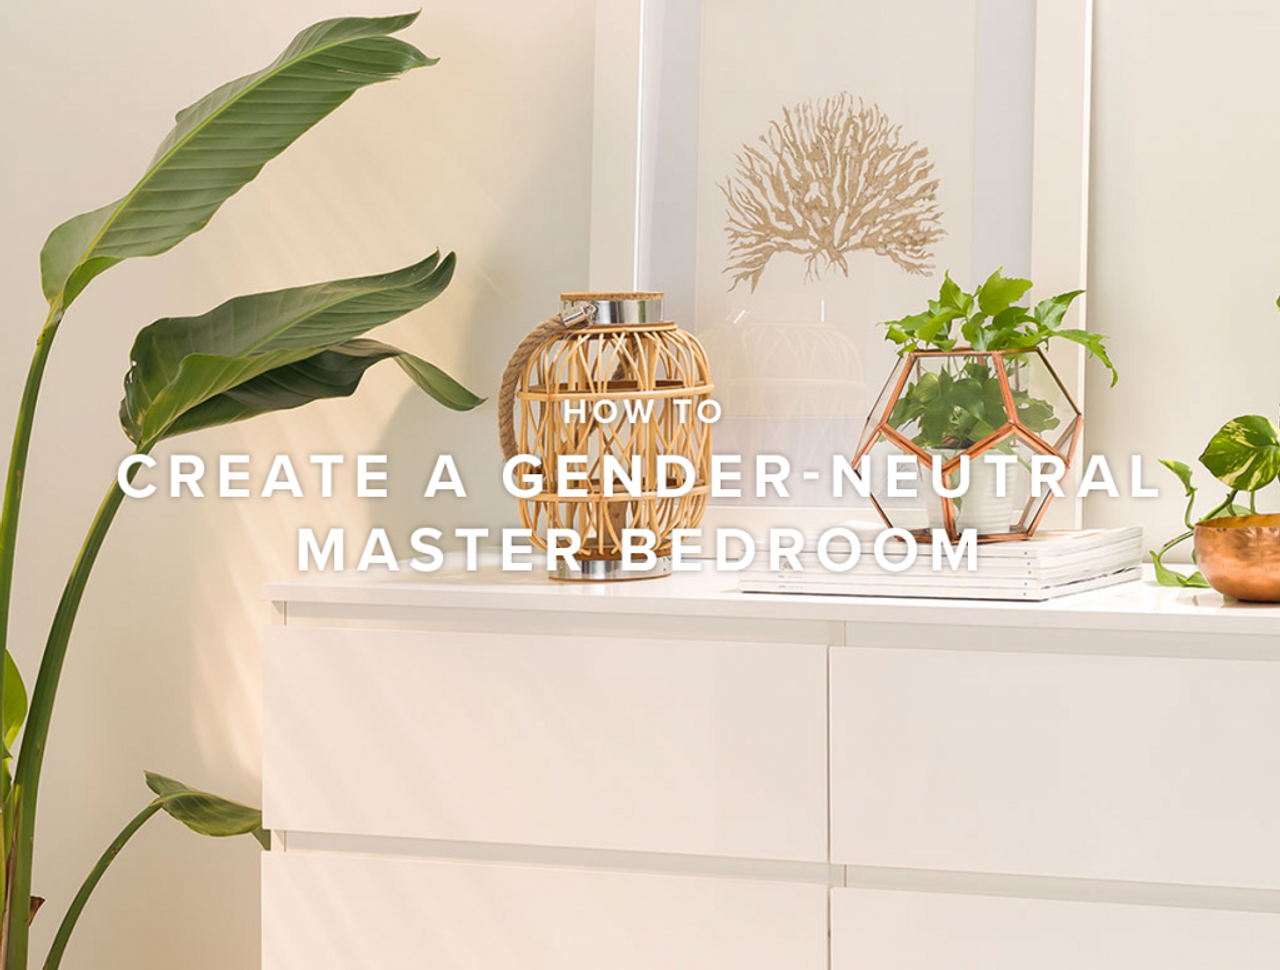 How to Create a Gender-Neutral Master Bedroom